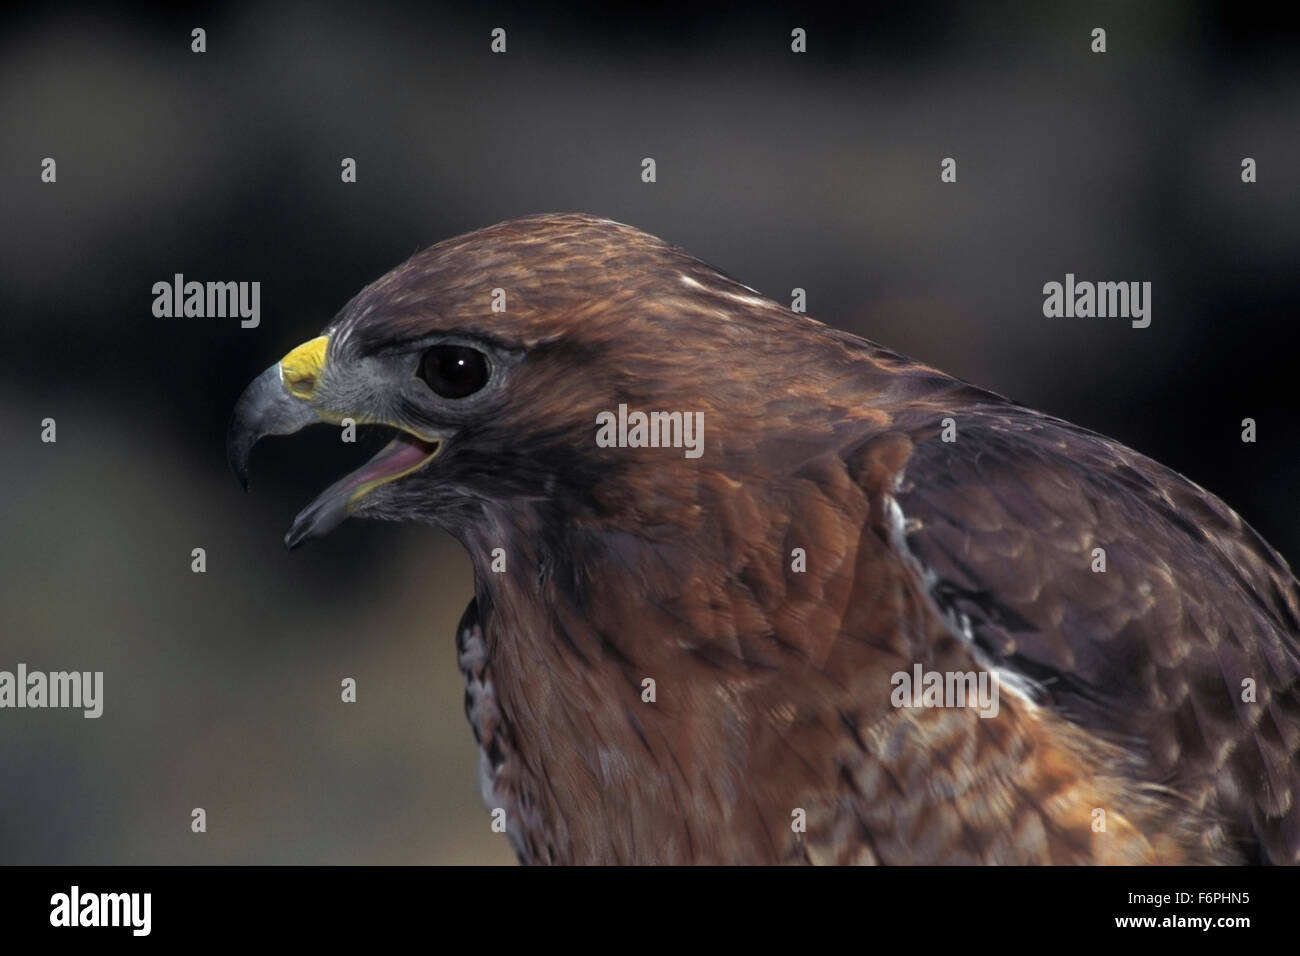 Red-tailed Hawk (Buteo jamaicensis)  Central Oregon. - Stock Image